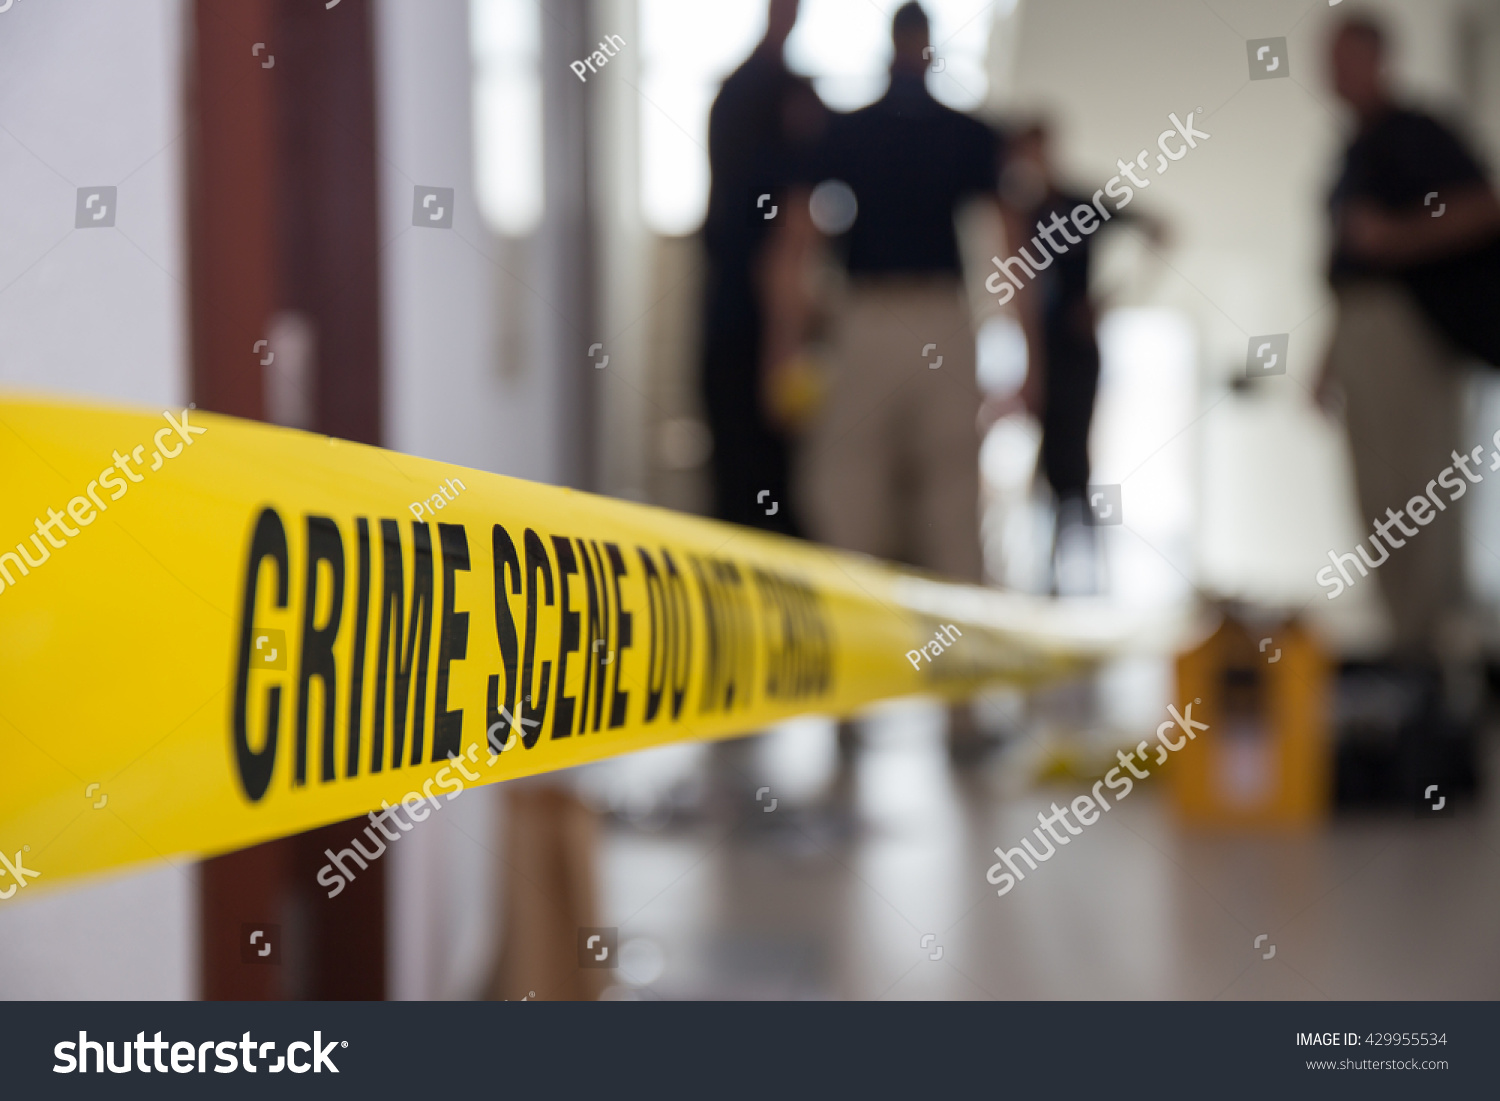 crime scene tape in building with blurred forensic team background #429955534 - 123PhotoFree.com